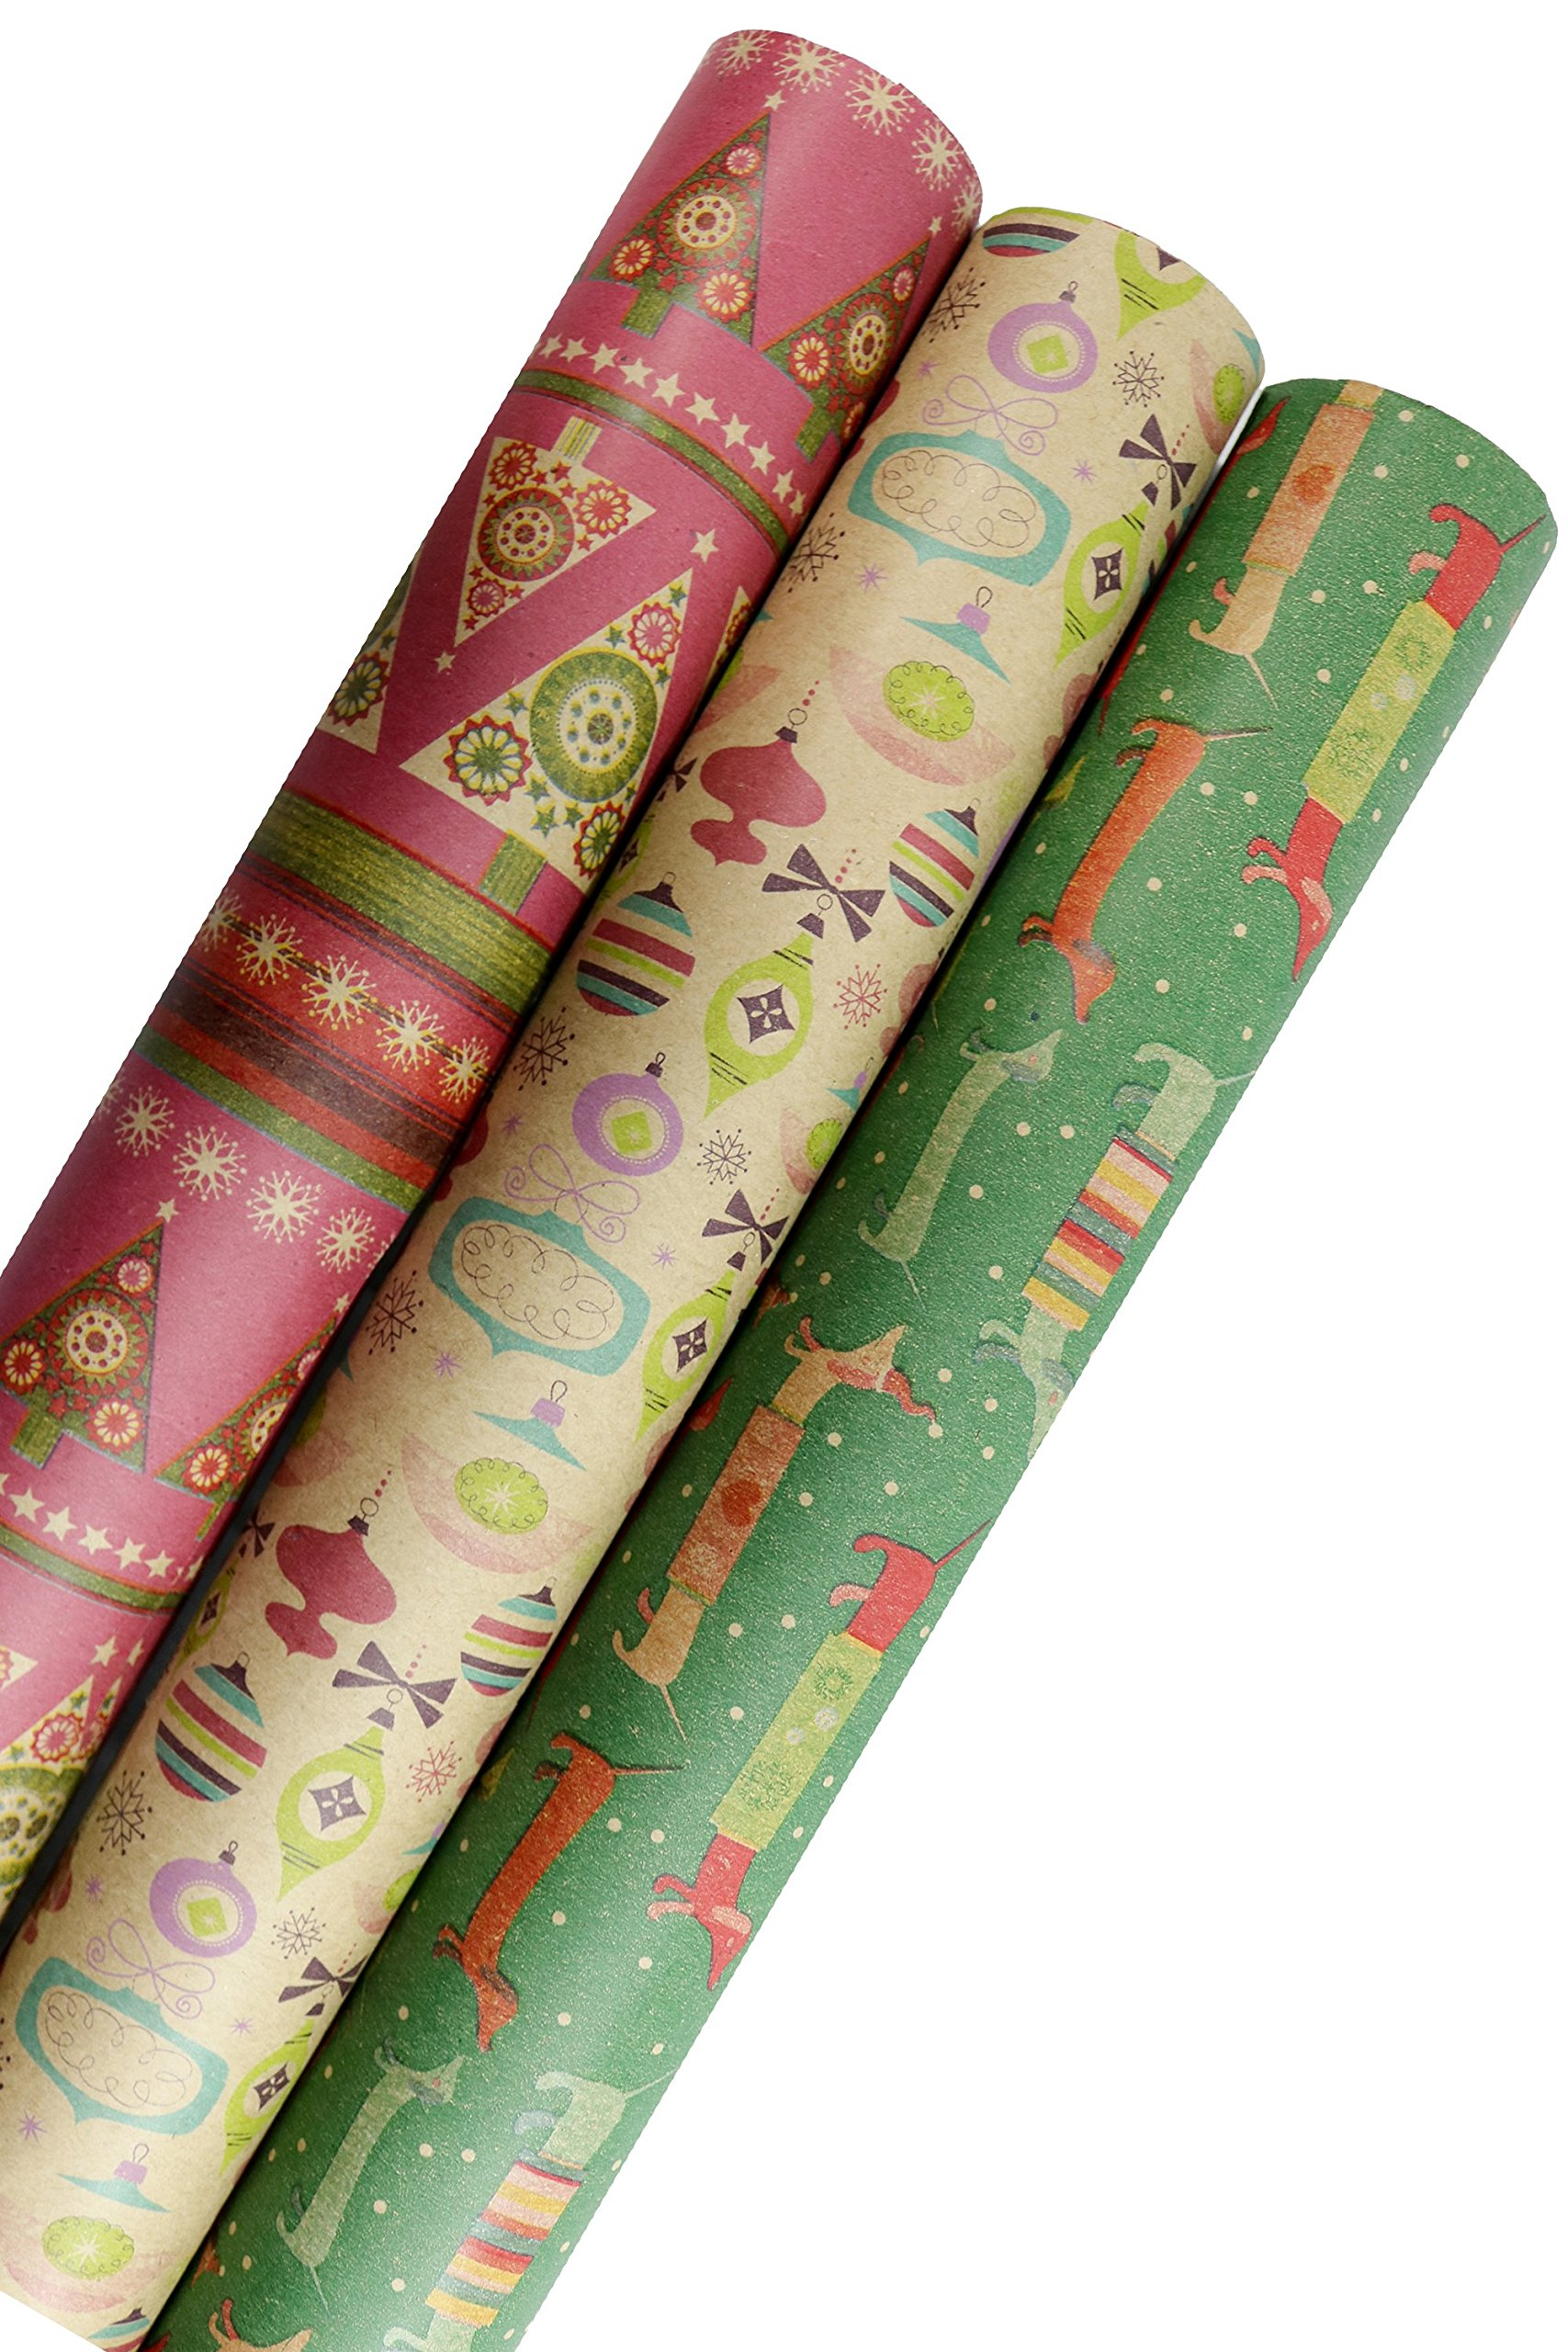 Thick beautiful wrapping paper